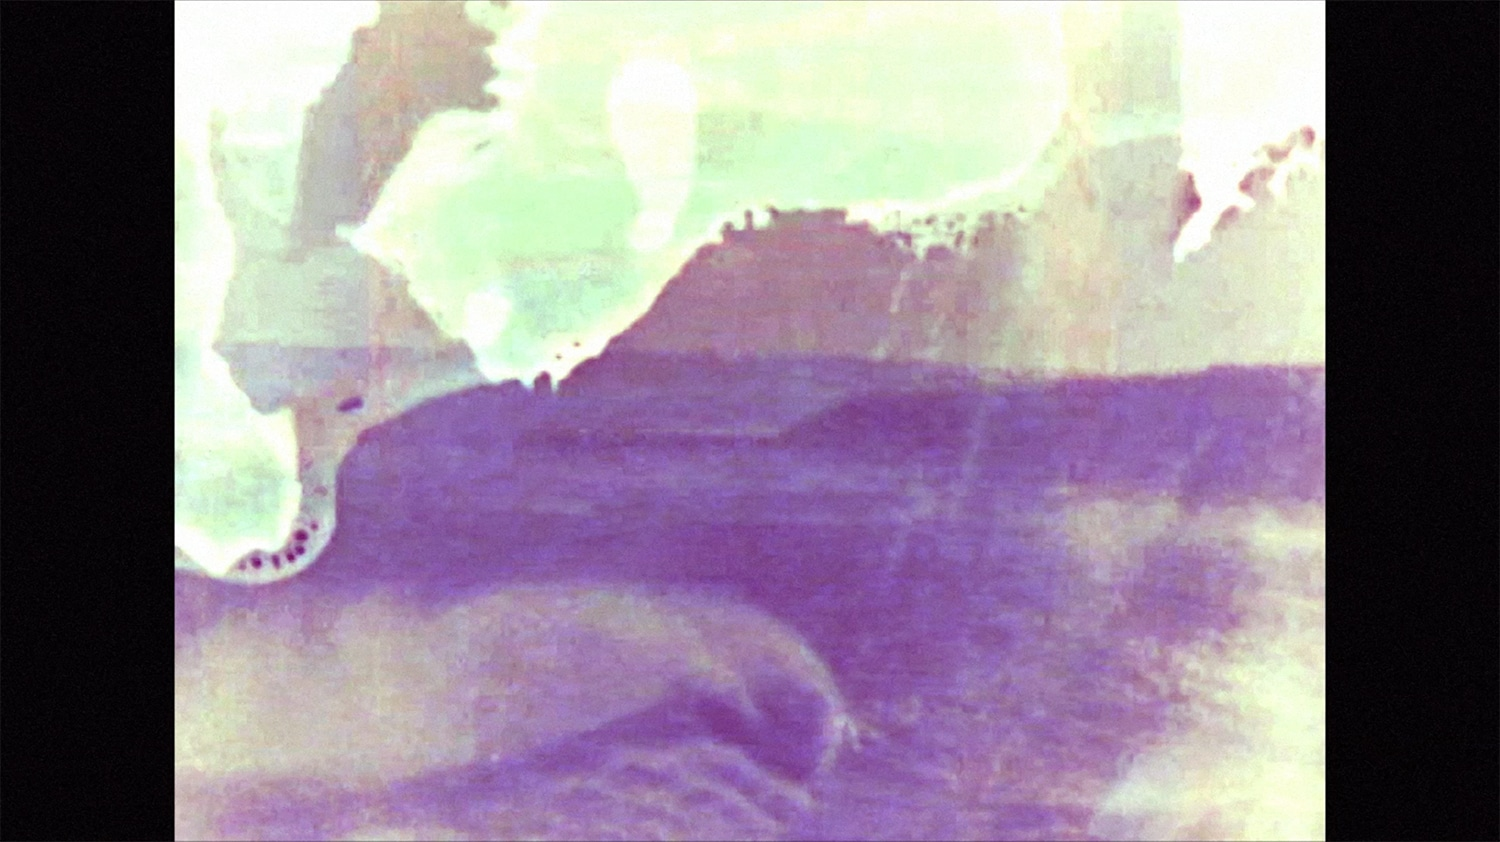 The Shorties entry: Sound on the Shore // A film by CJ Mirra. Shot on super8 capturing sonic highlights & heavy sessions from my perspective...Ft. Noah Lane